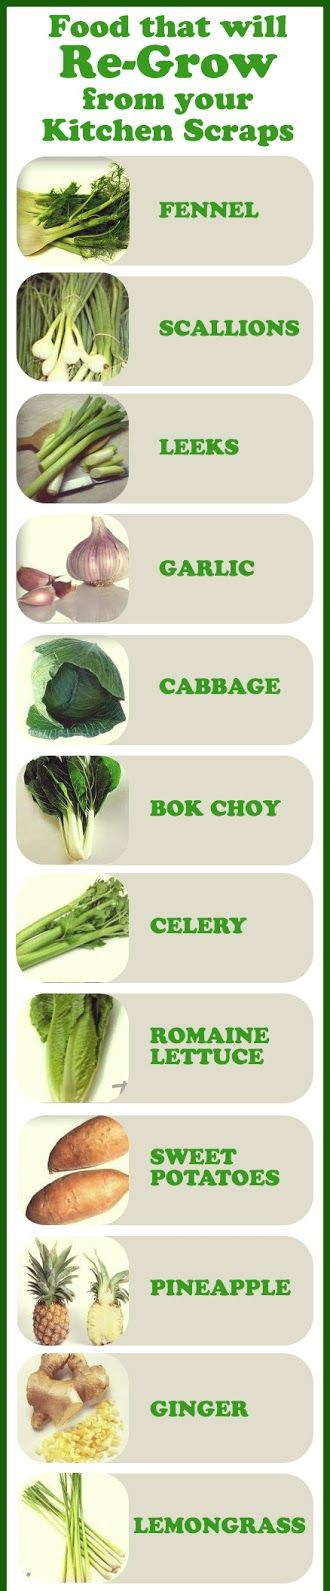 Regrow these foods from kitchen scraps!